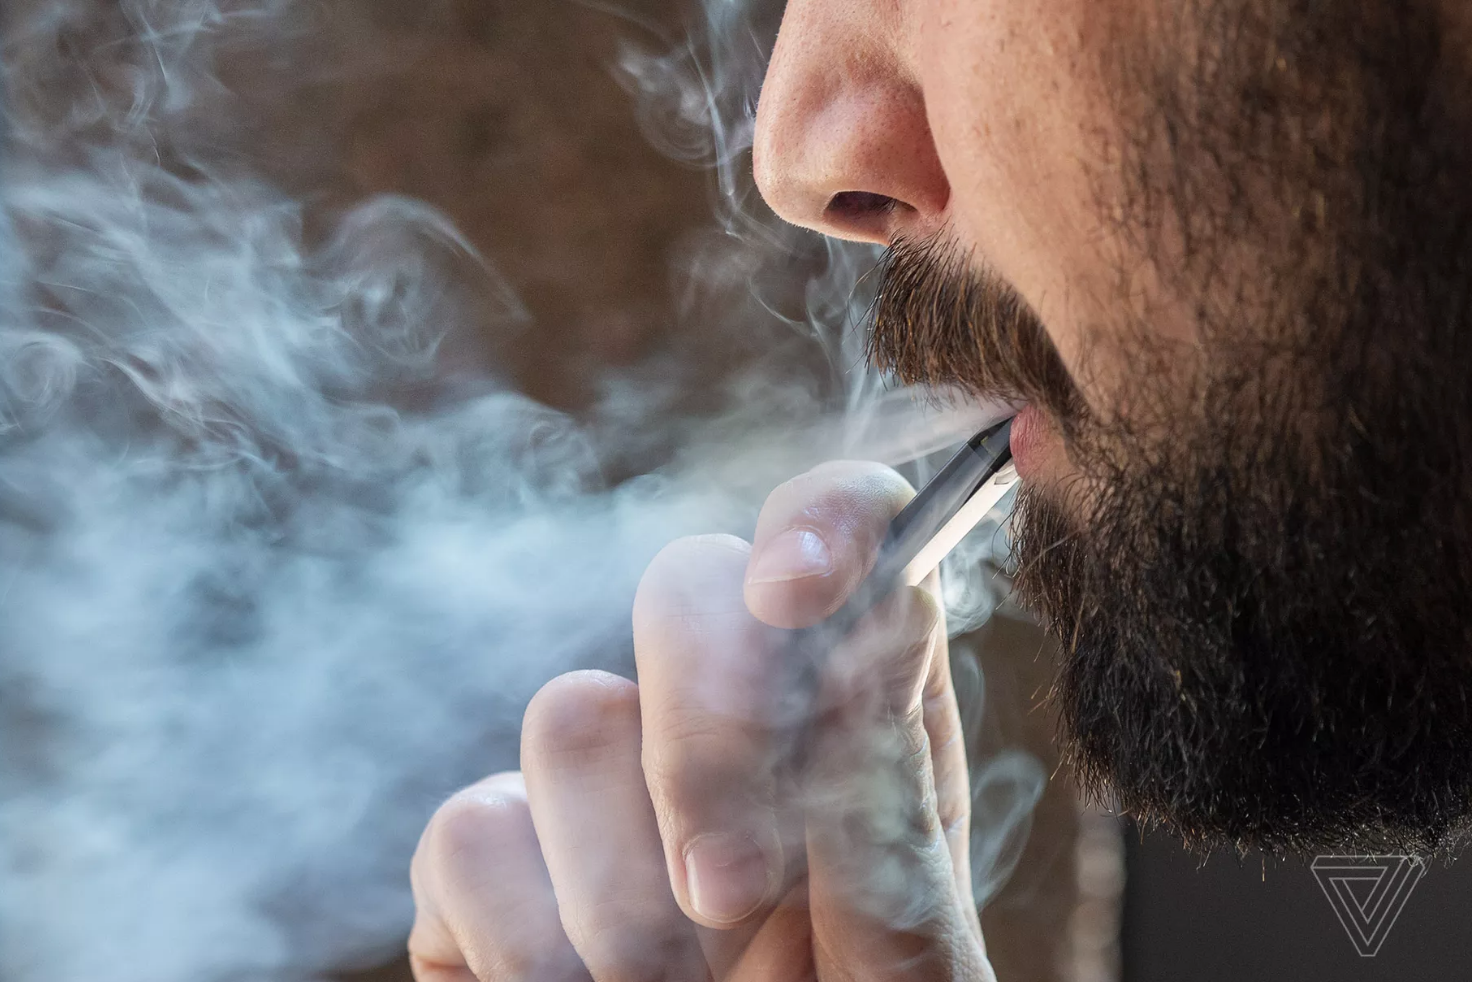 Vape flavors can make nasty new chemicals in your e-liquid - https://www.theverge.com/2018/10/18/17996706/vape-juice-flavoring-electronic-cigarettes-chemicals-ingredients-irritating-e-liquid